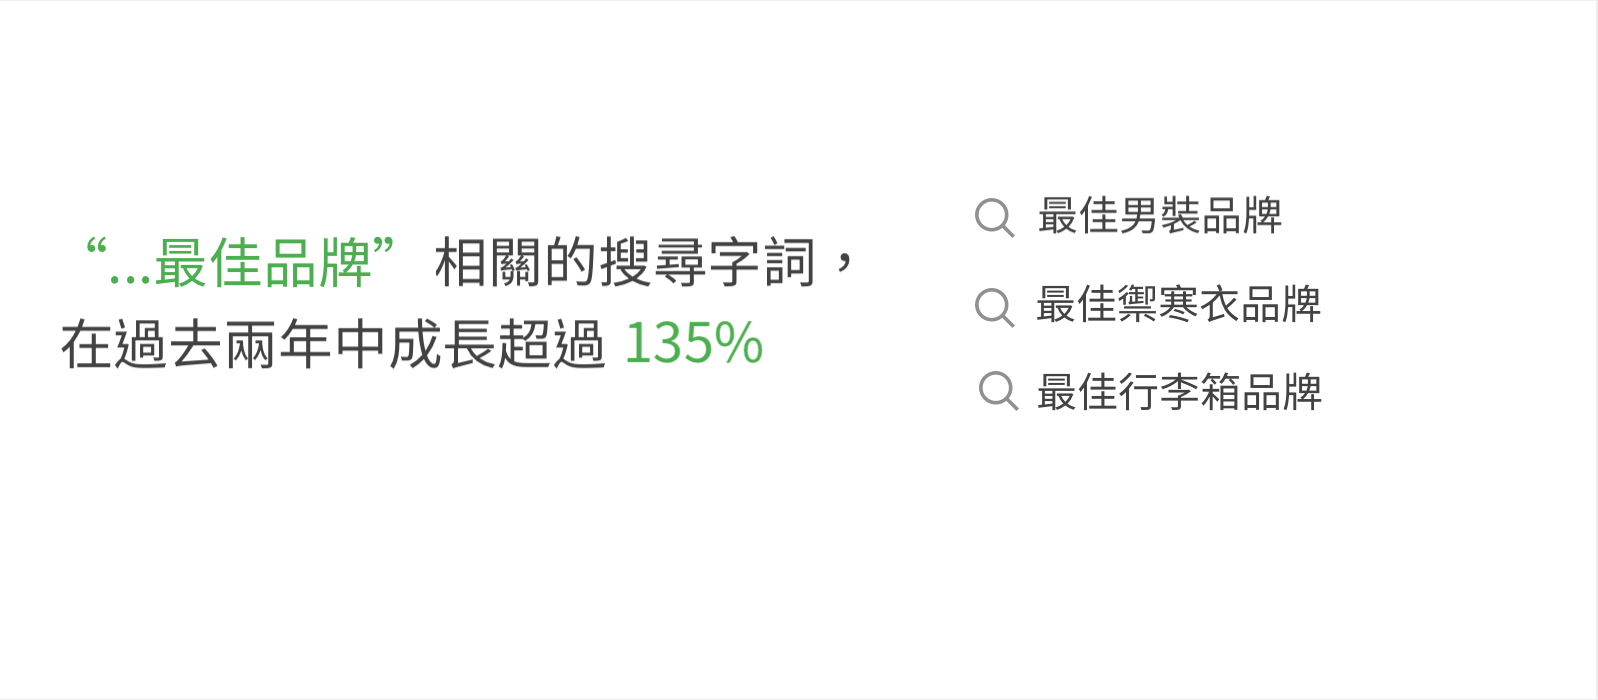 zh_curious6_lg2x 拷貝.png